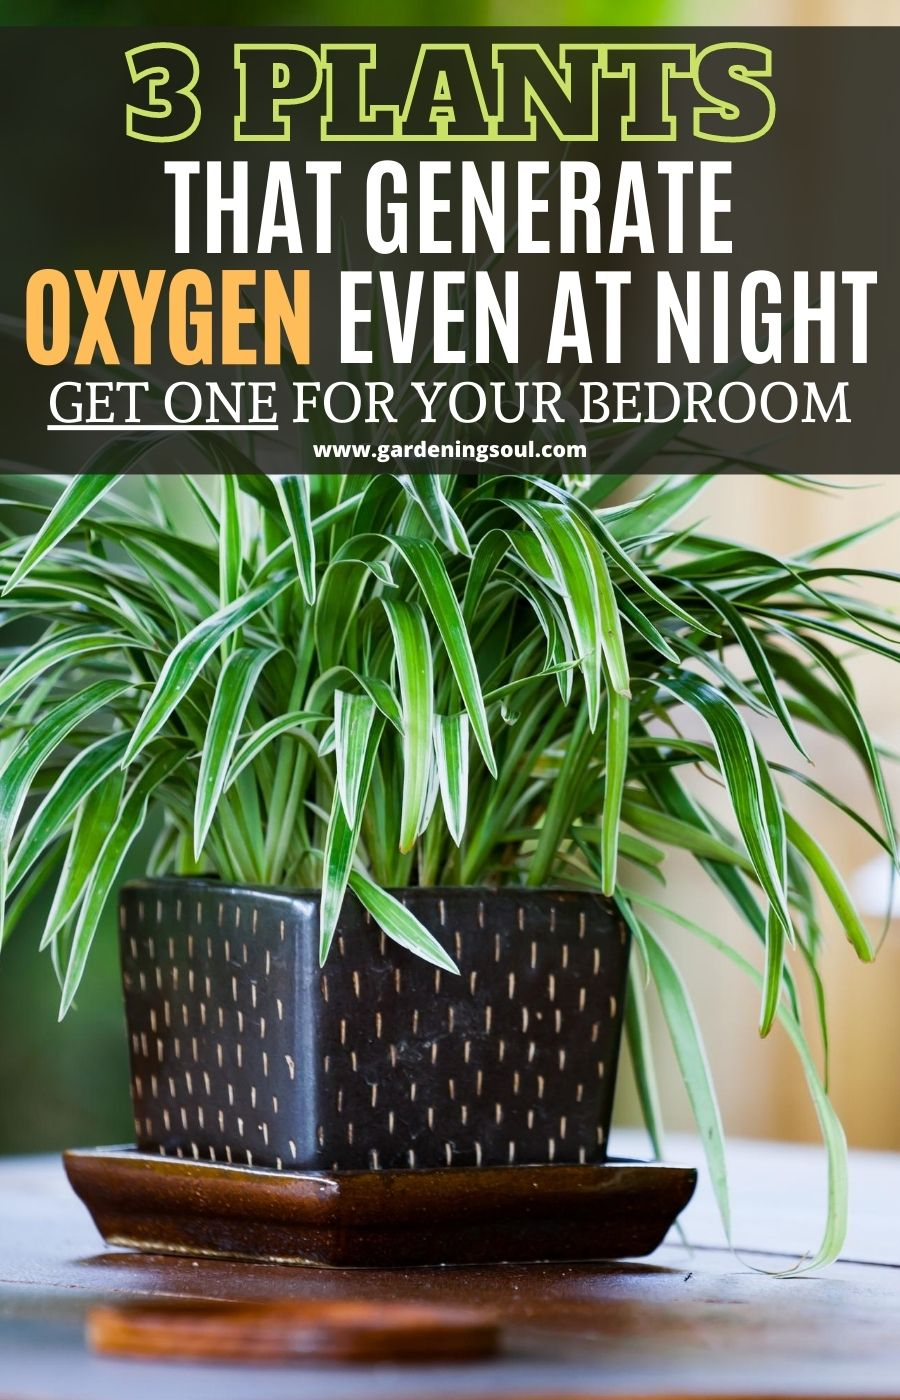 3 Plants That Generate Oxygen Even at Night – Get